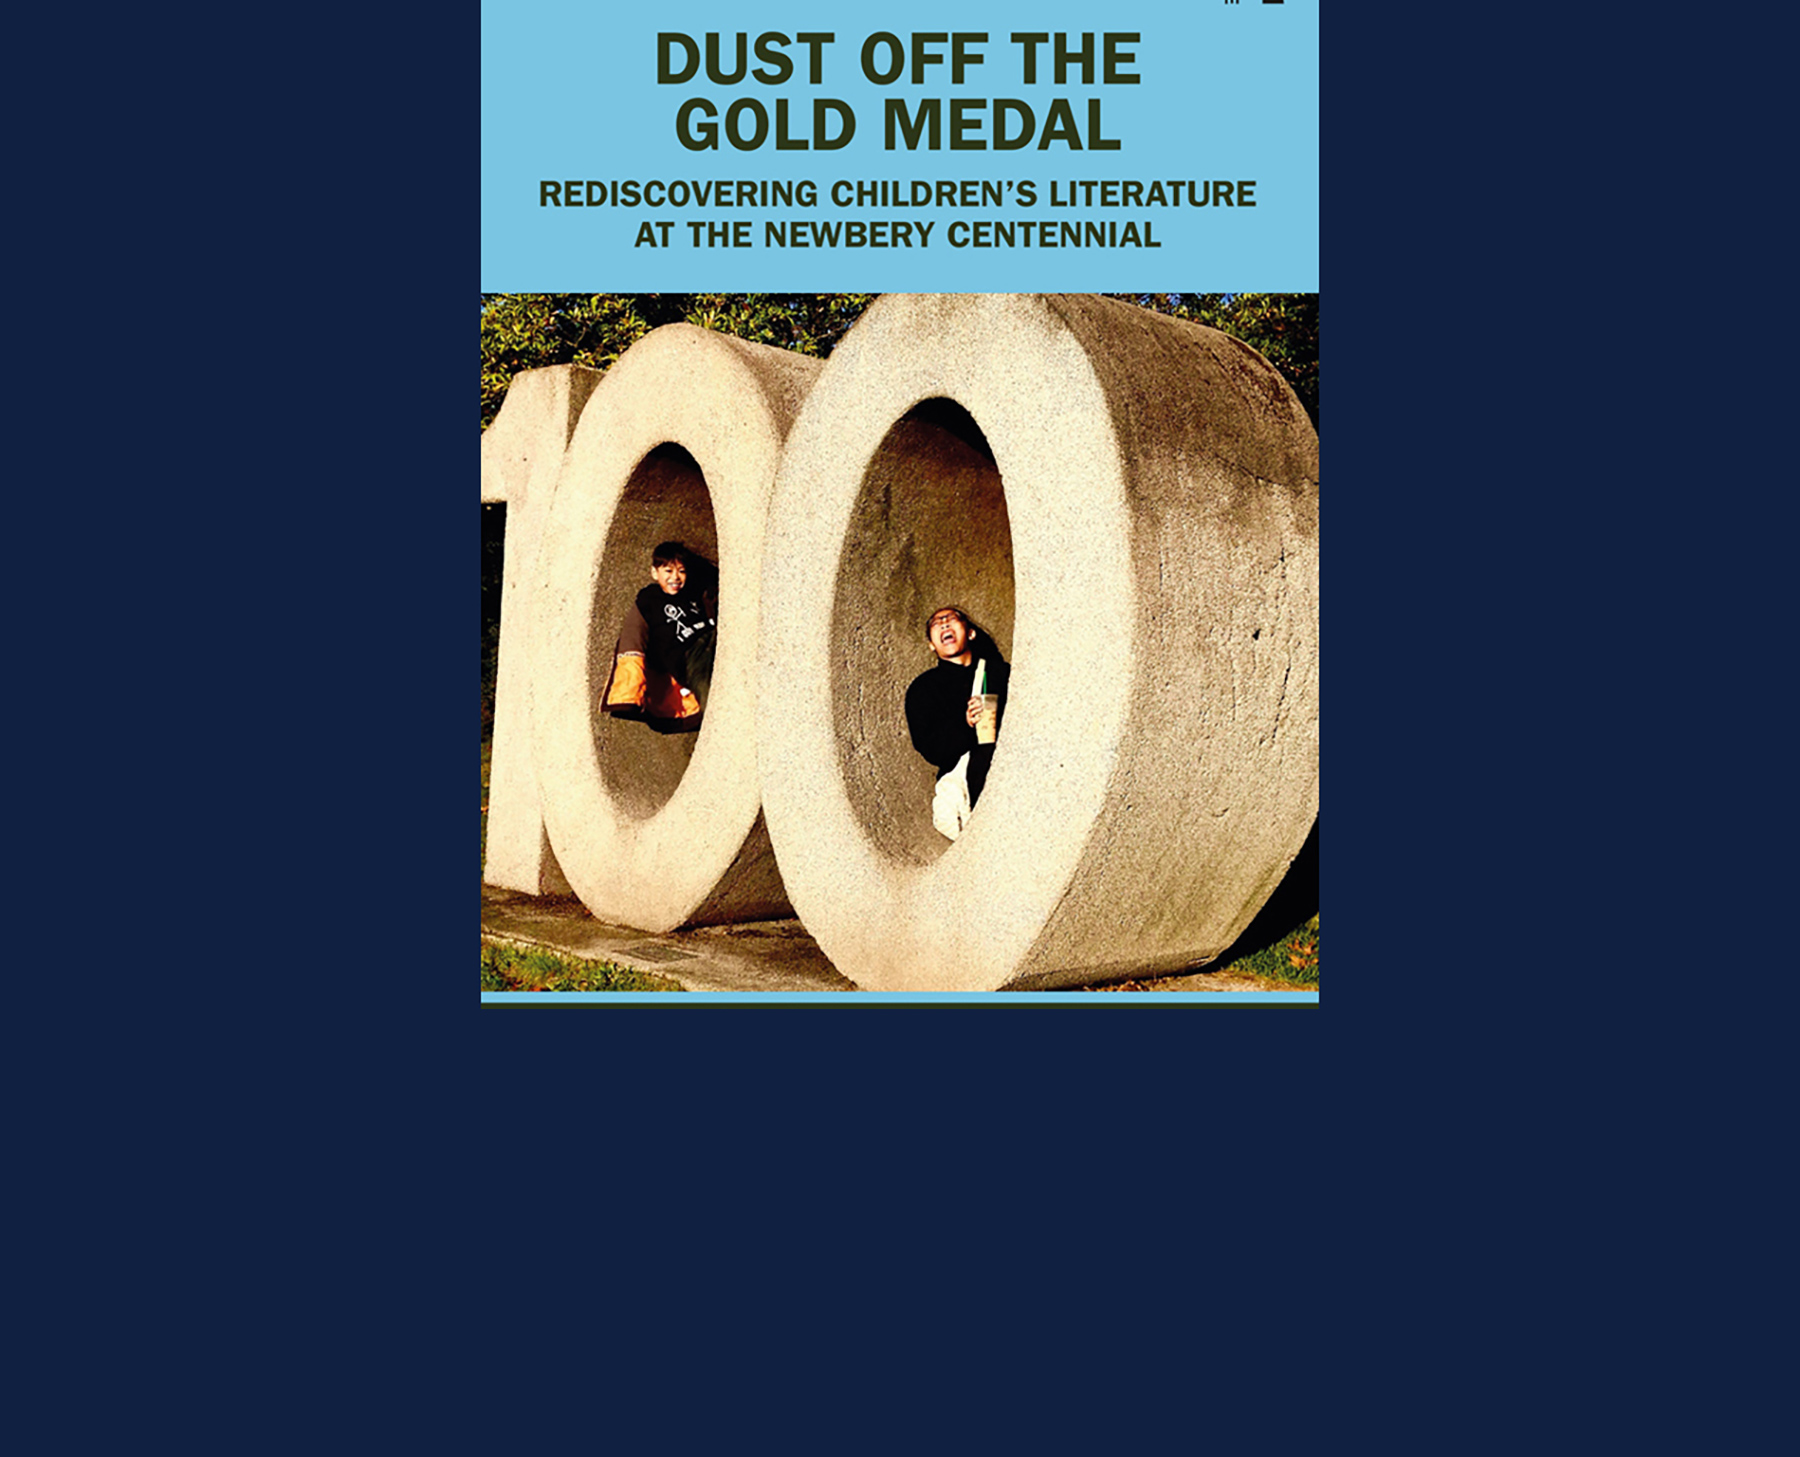 """(book cover): """"Dust Off the Gold Medal: Rediscovering Children's Literature at the Newbery Centennial"""" was published by Routledge."""